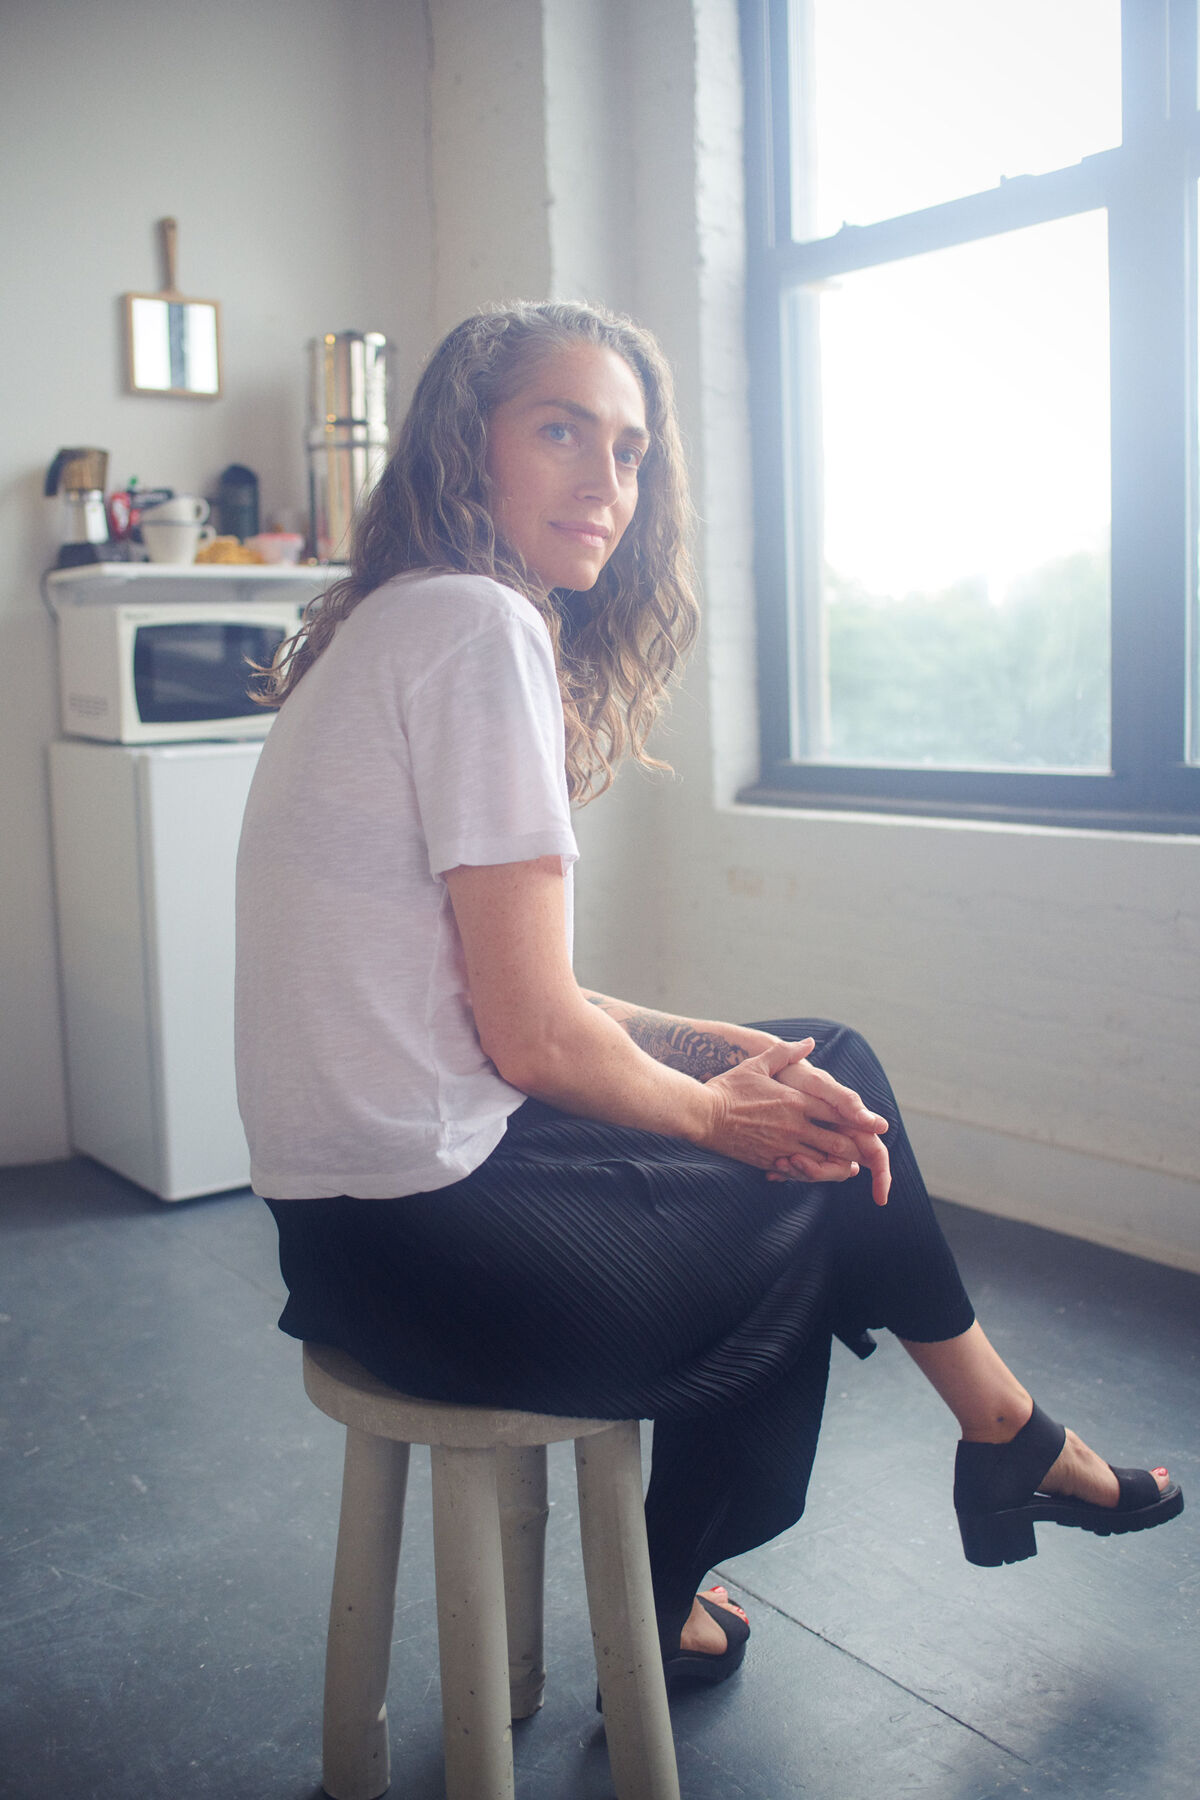 Genesis Belanger in her New York studio by Alex John Beck for Artsy.